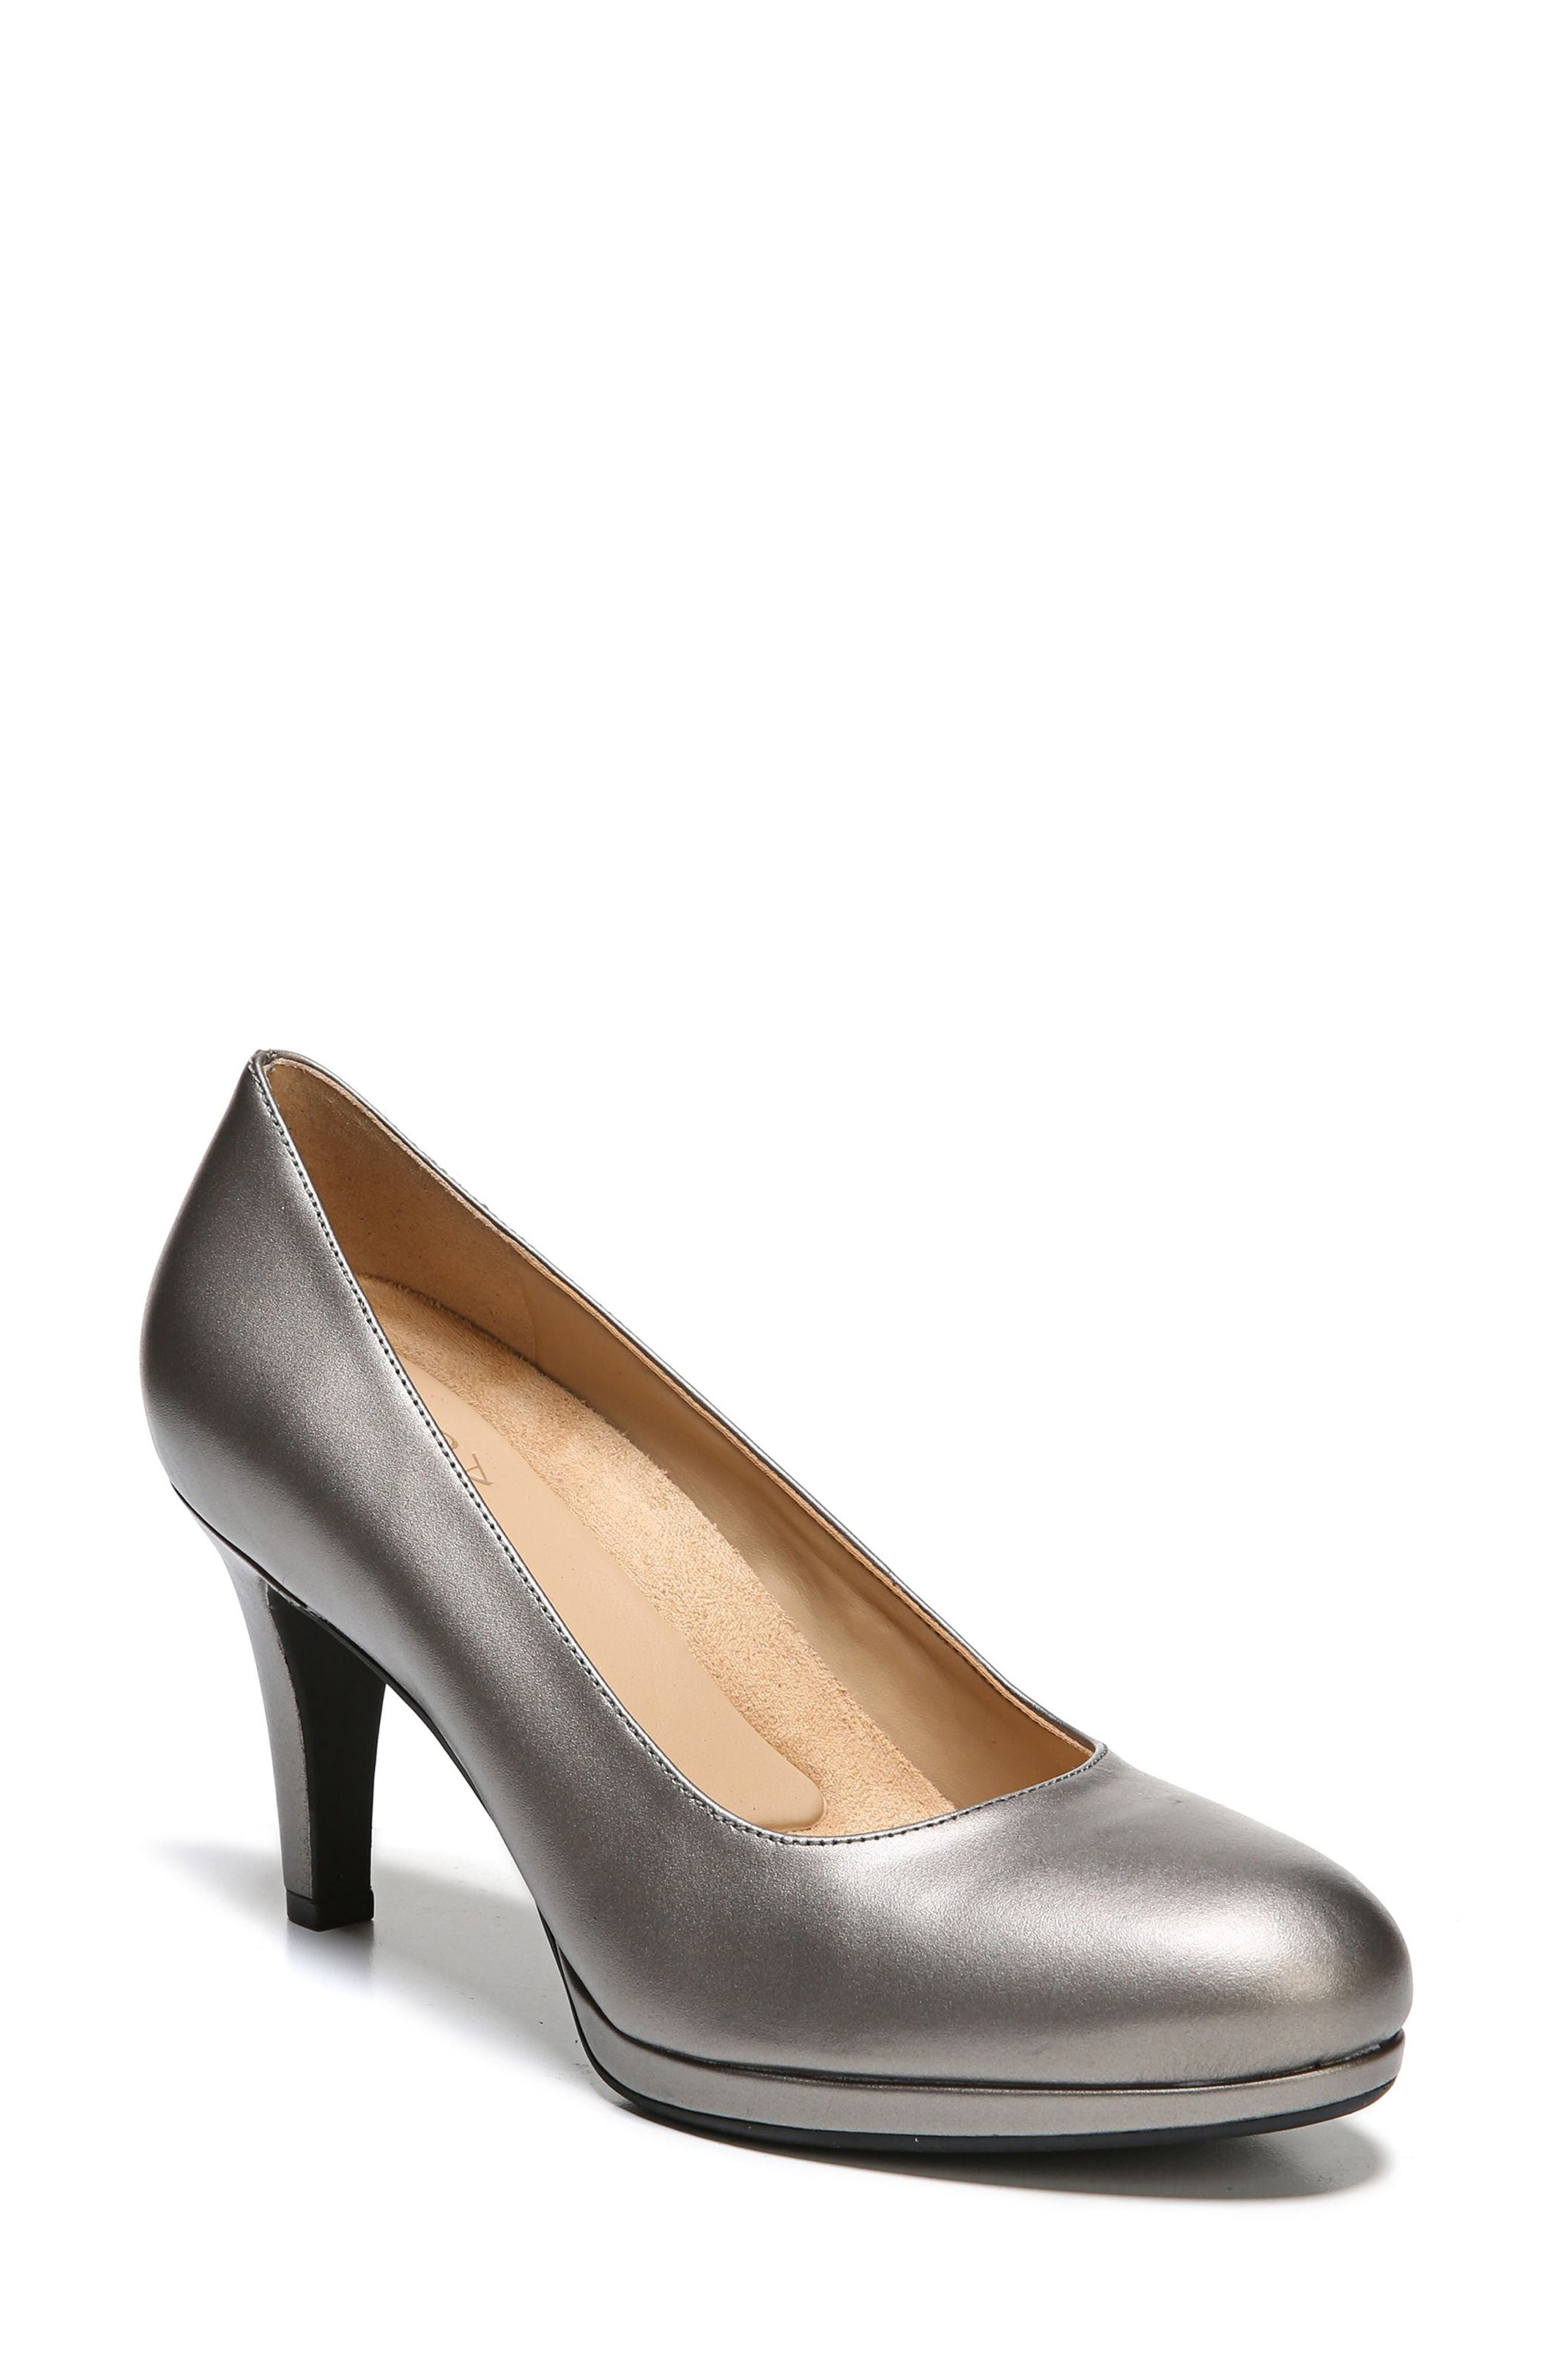 Alternate Image 1 Selected - Naturalizer 'Michelle' Almond Toe Pump (Women)